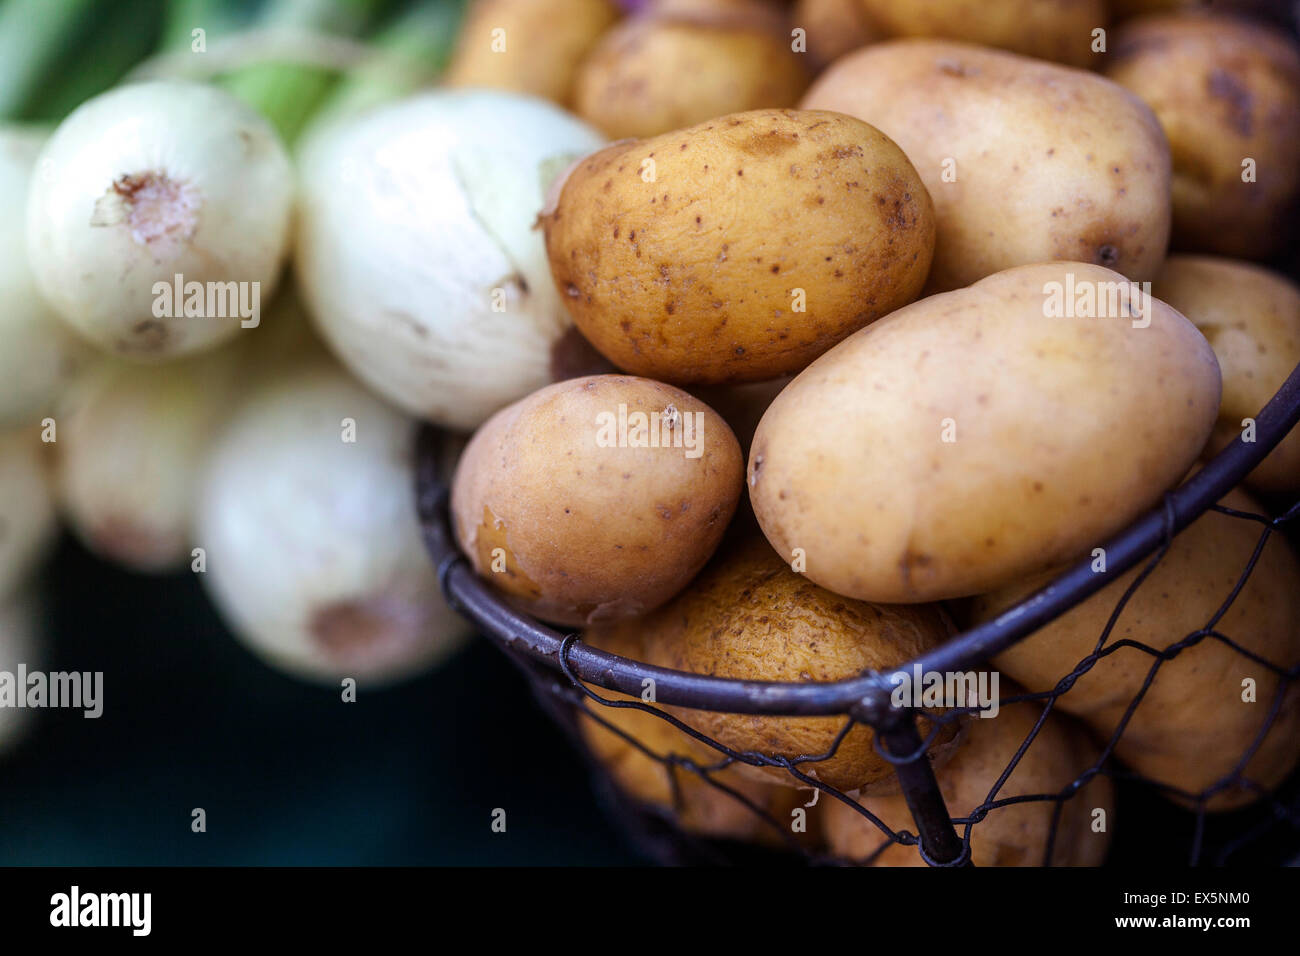 Potatoes in a wire basket and onions - Stock Image